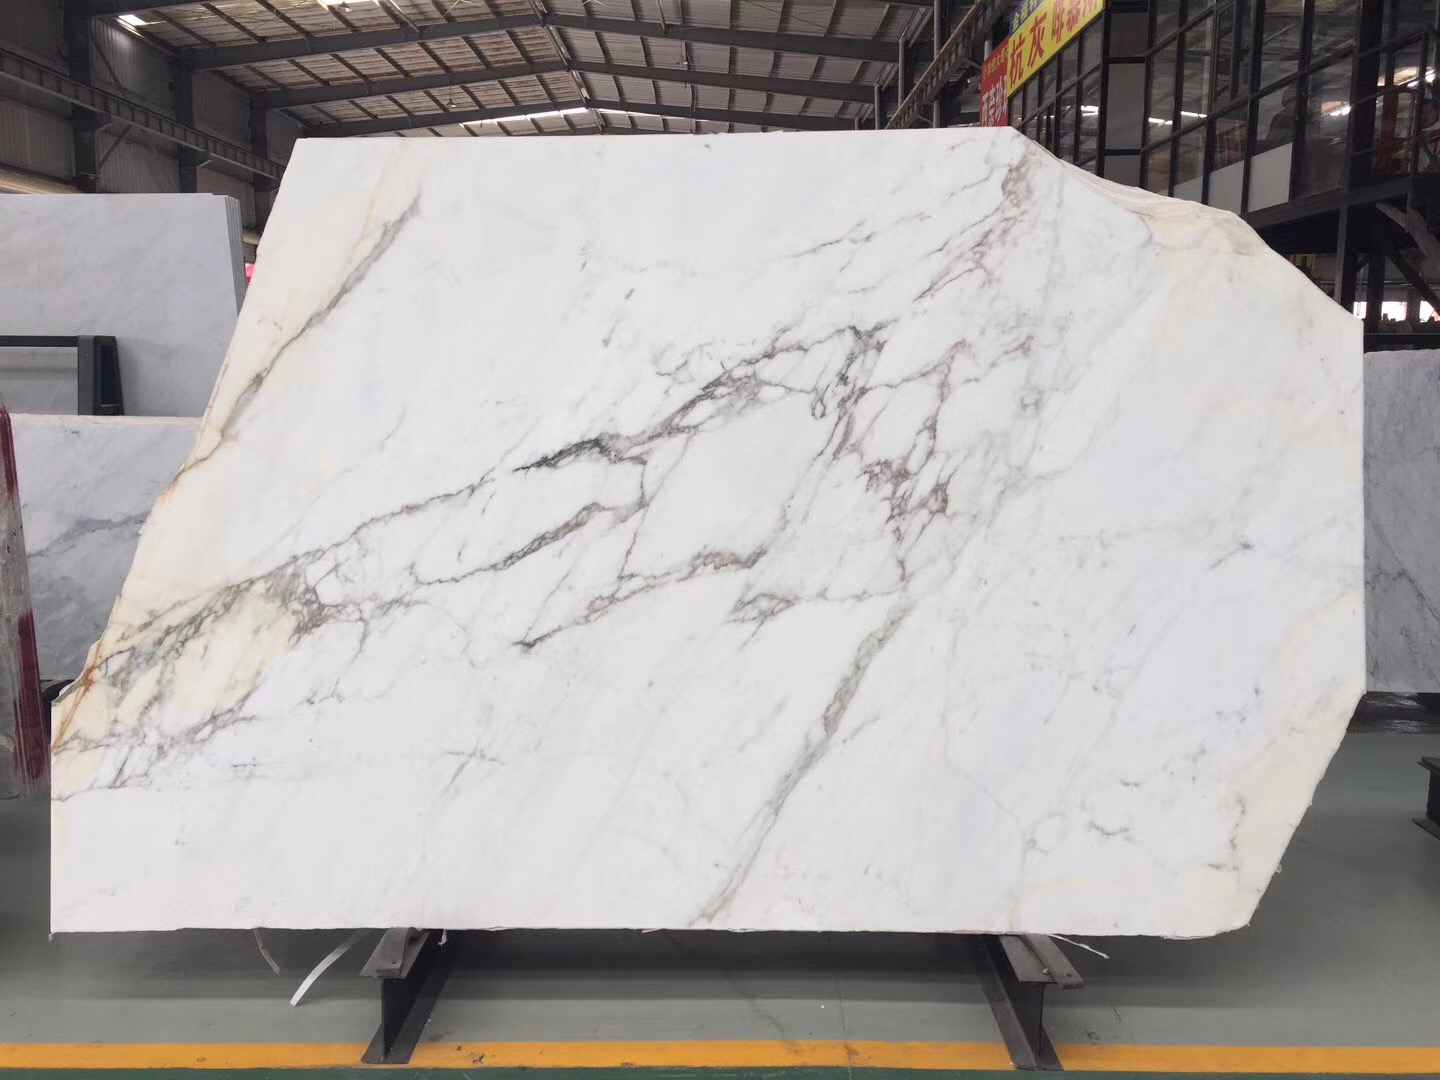 Calcutta gold marble,cost of calacatta gold marble,what is calcutta gold marble,calcutta gold marble kitchen,pictures of calcutta gold marble,marble white and gold